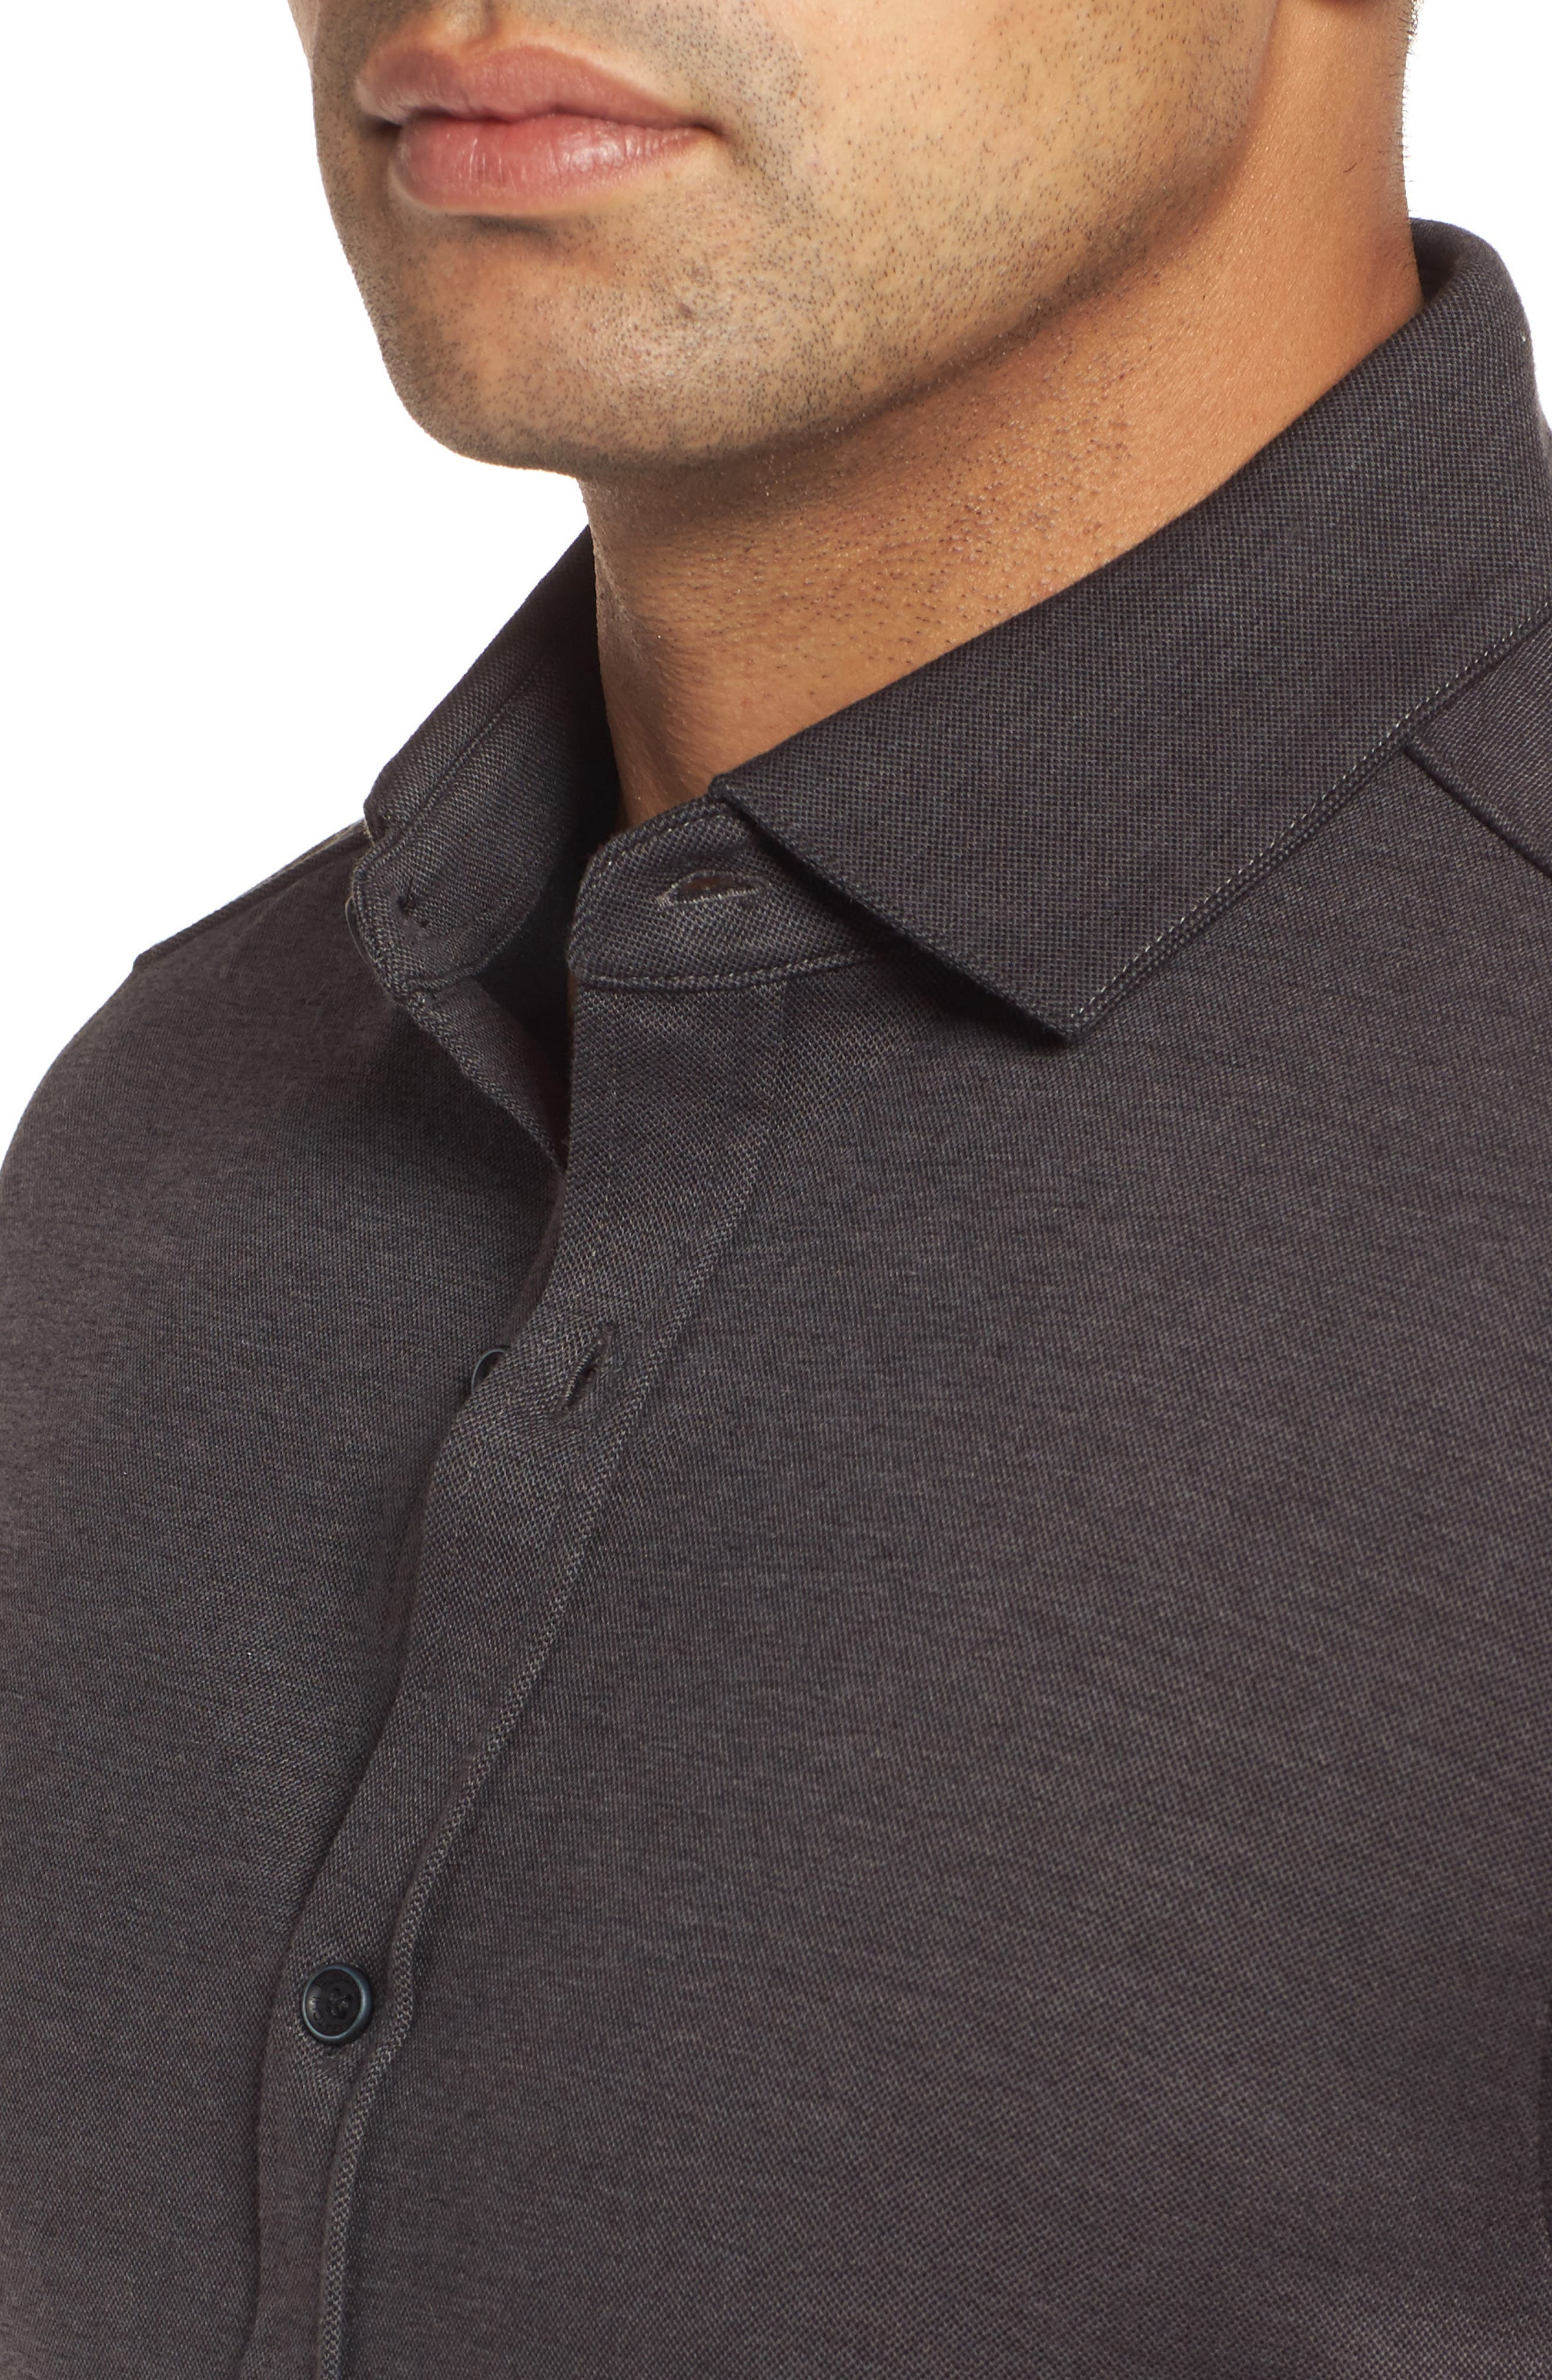 Classic Fit Heathered Knit Sport Shirt,                             Alternate thumbnail 4, color,                             020